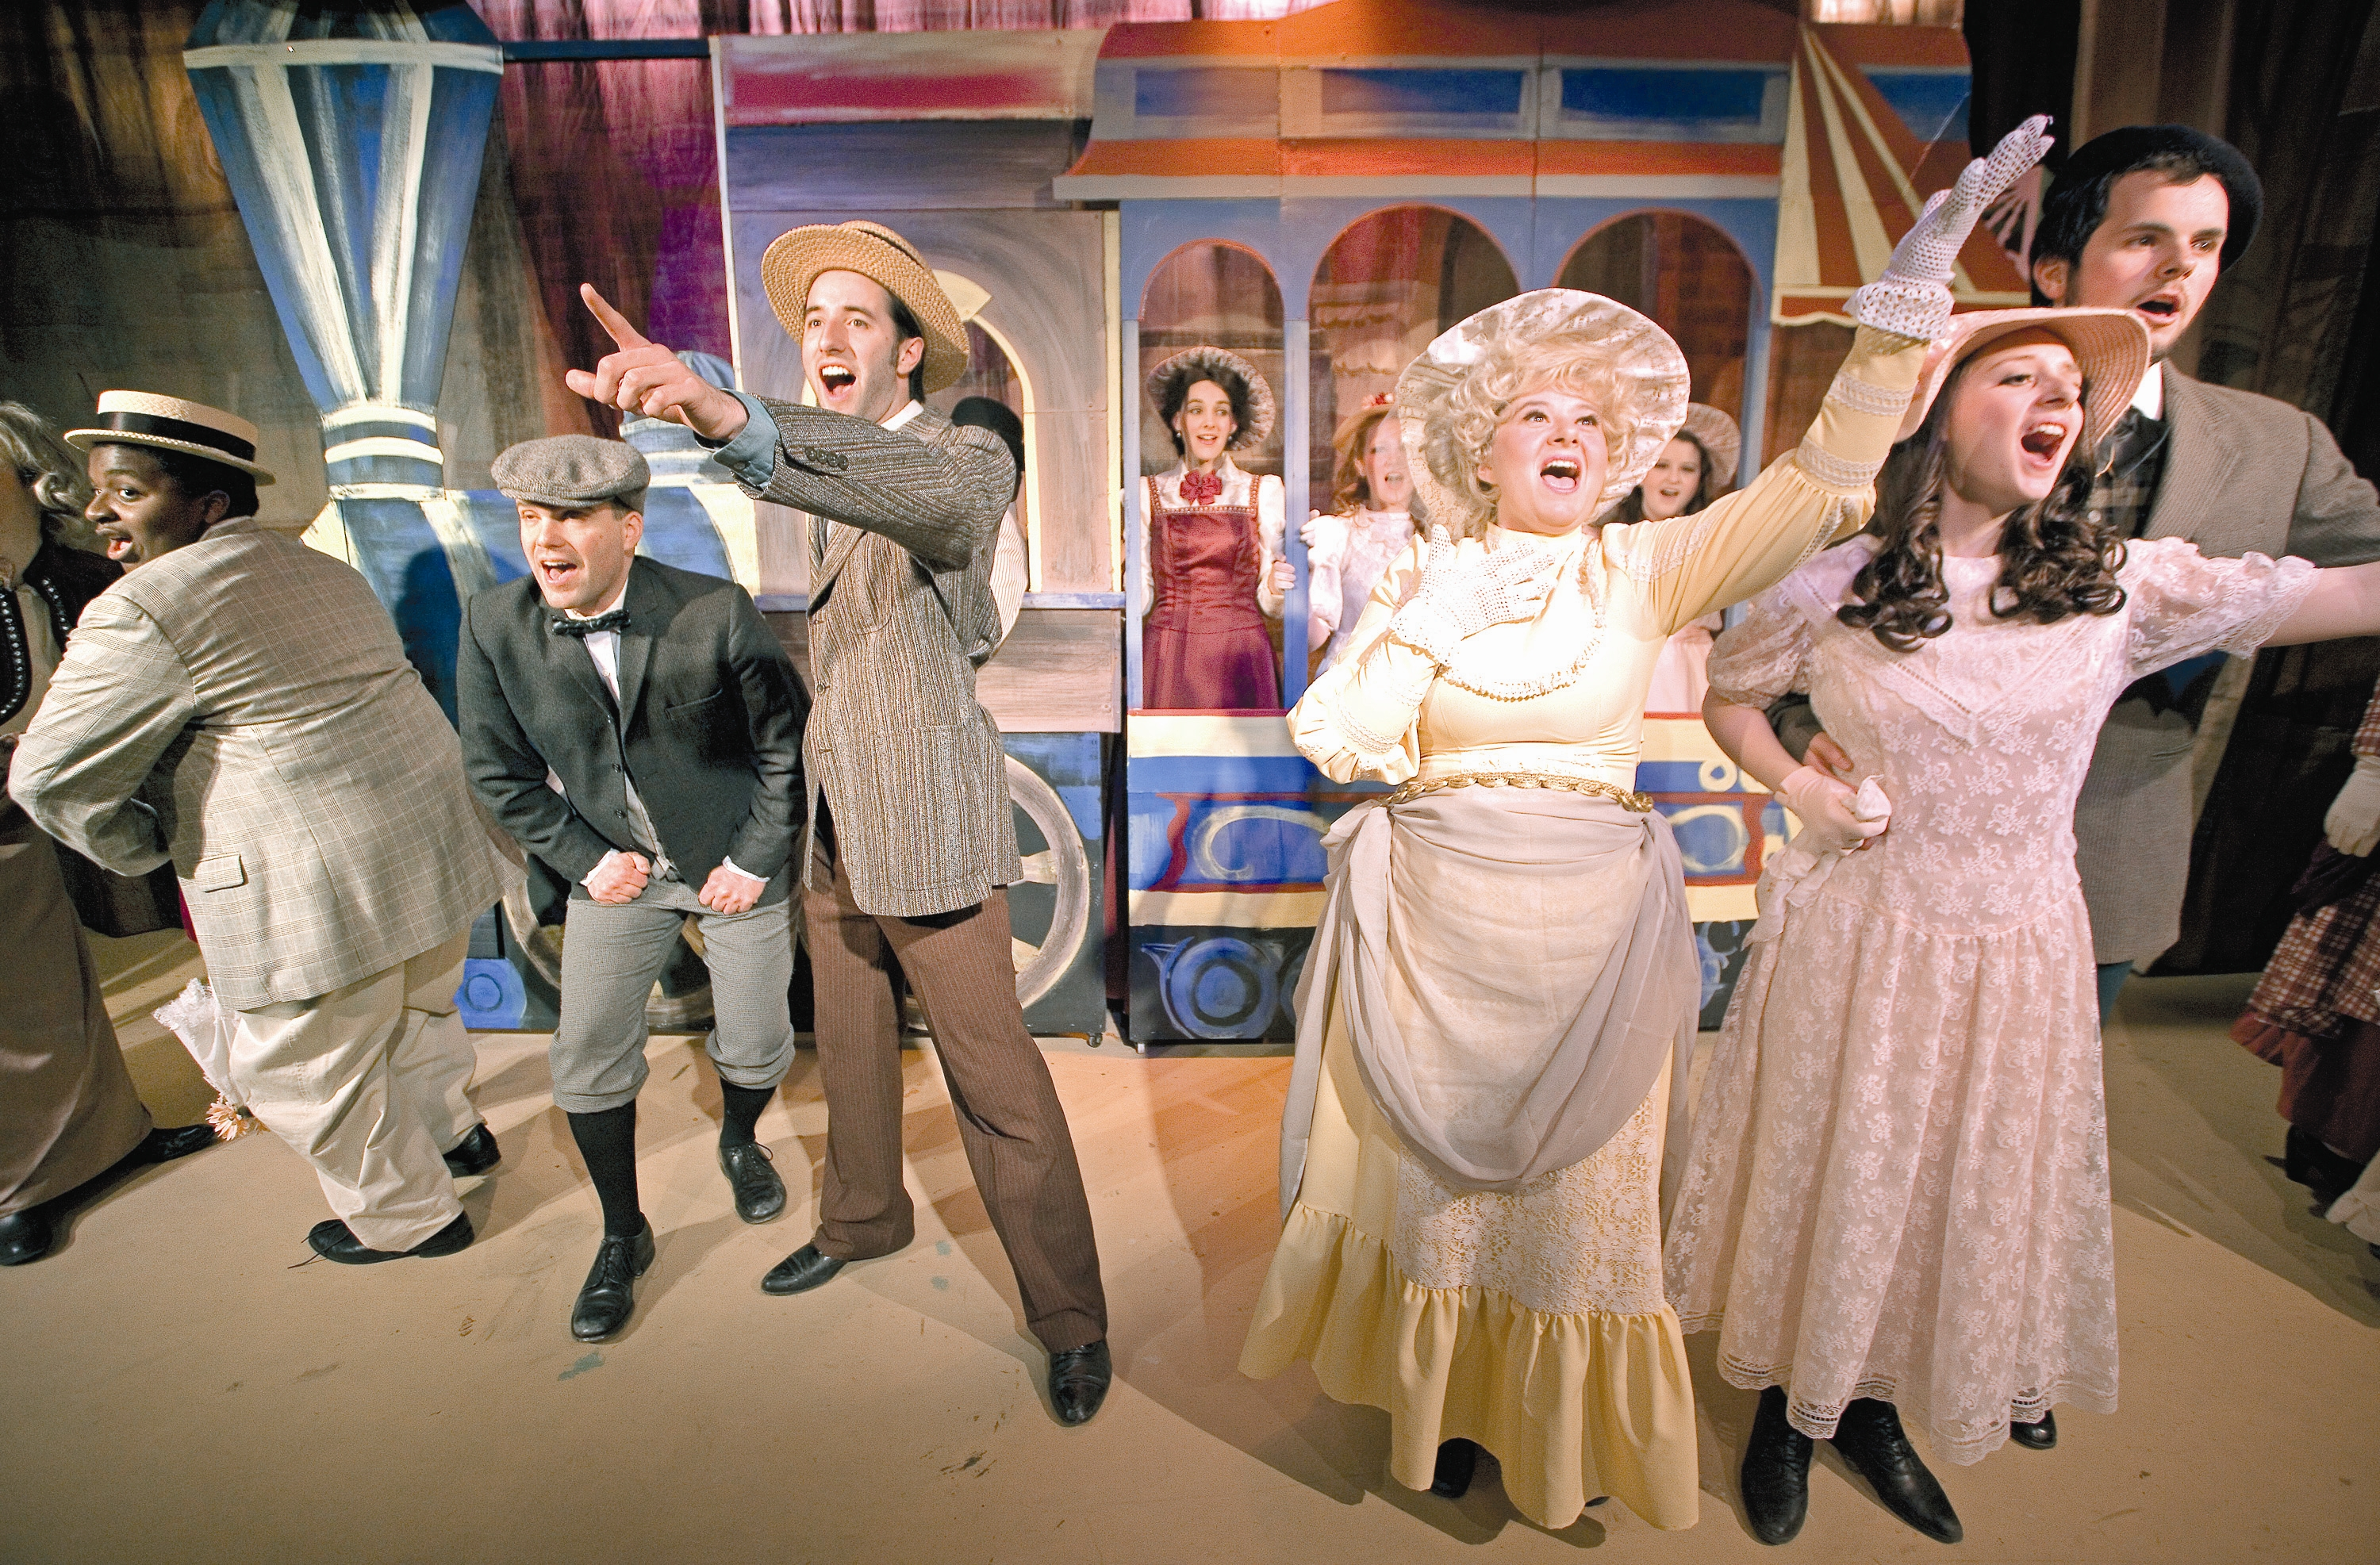 Humming with humor: RTOP's 'Hello, Dolly!' is packed full of fun, music and laughter